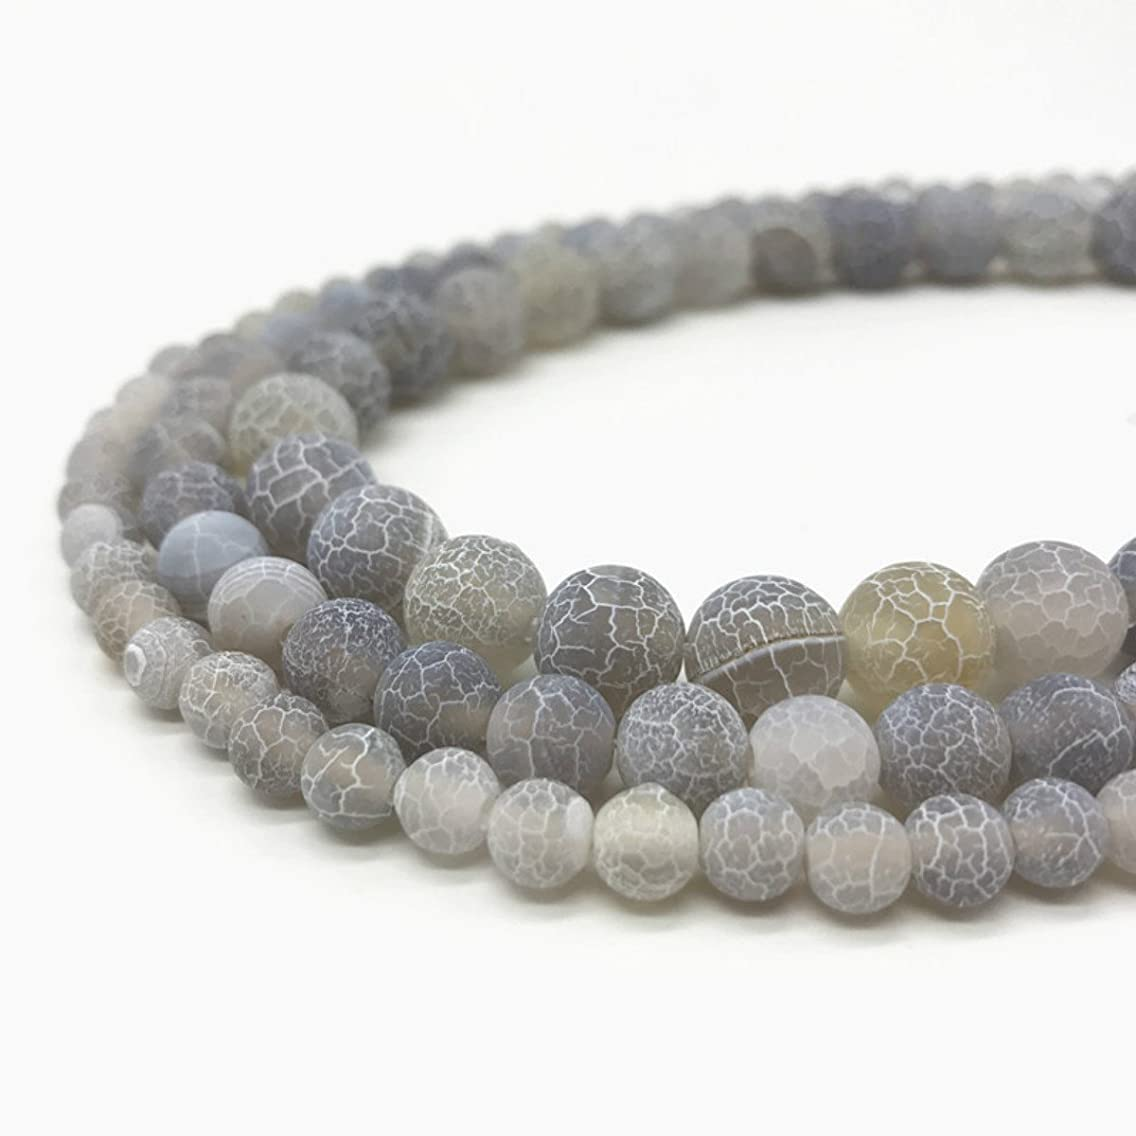 8mm Gray Frosted Crackle Dragon Vein Agate Beads Round Semi Precious Gemstone Loose Beads for Jewelry Making (47-50pcs/strand)